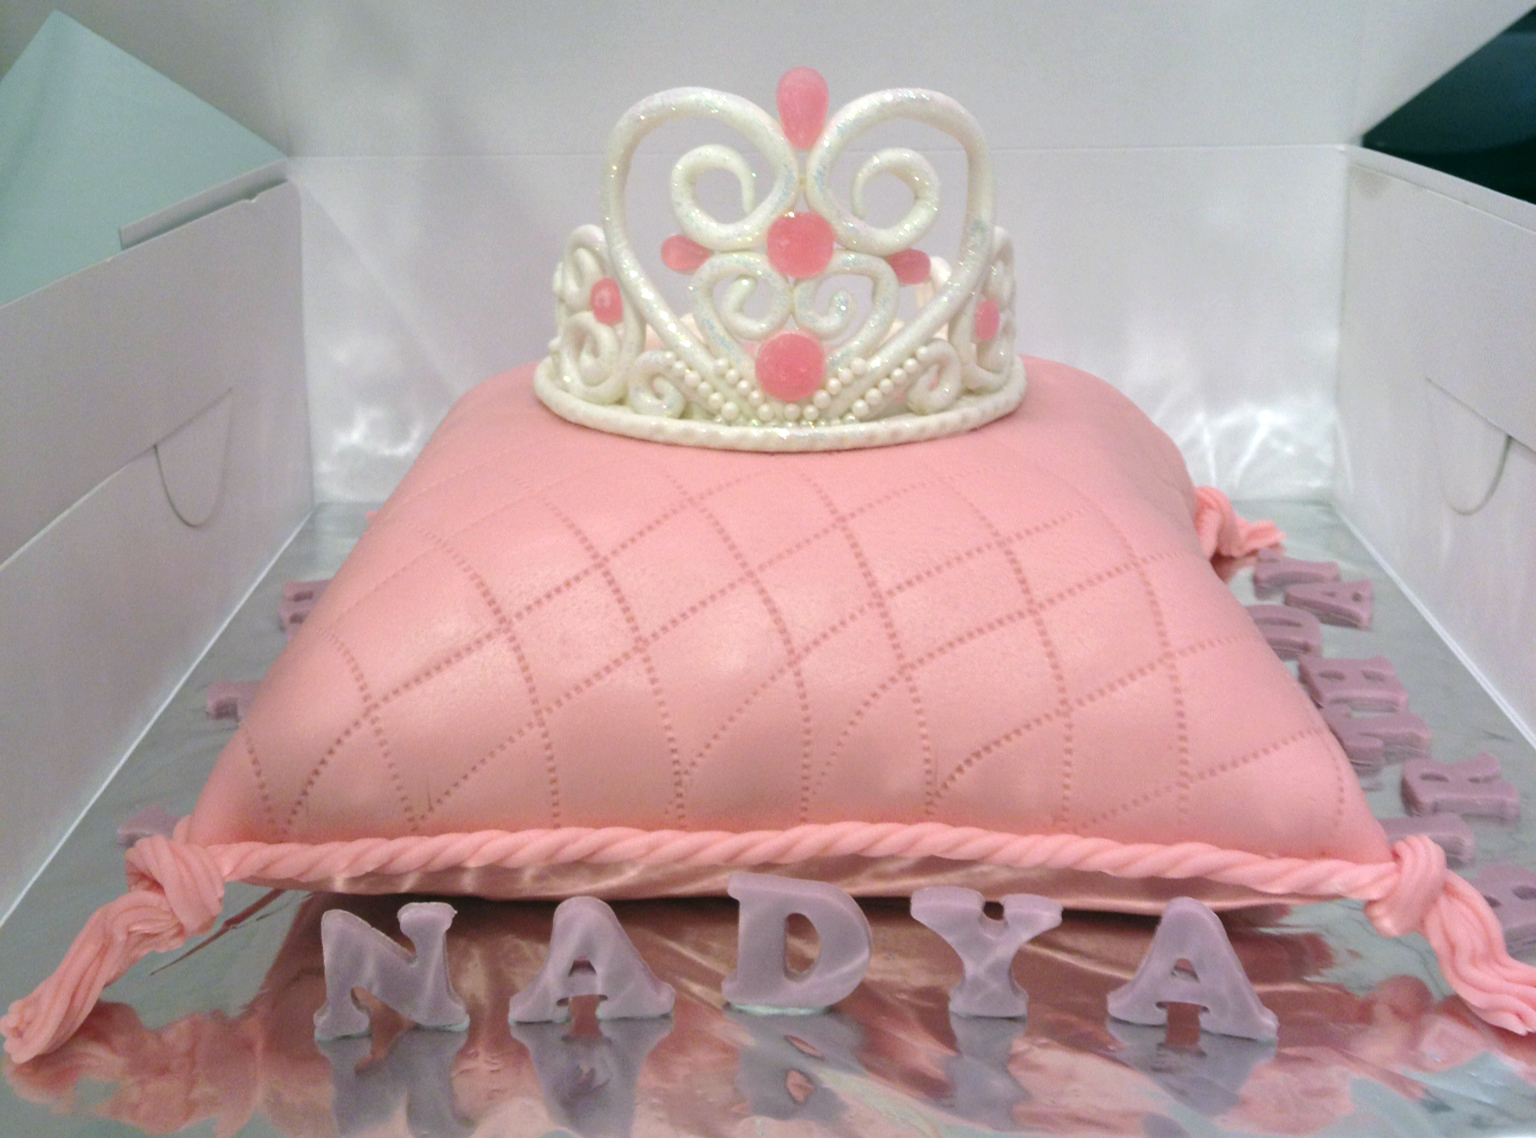 Princess Pillow Cake Images : Joyous Cake Company: Princess Pillow cake with edible ...